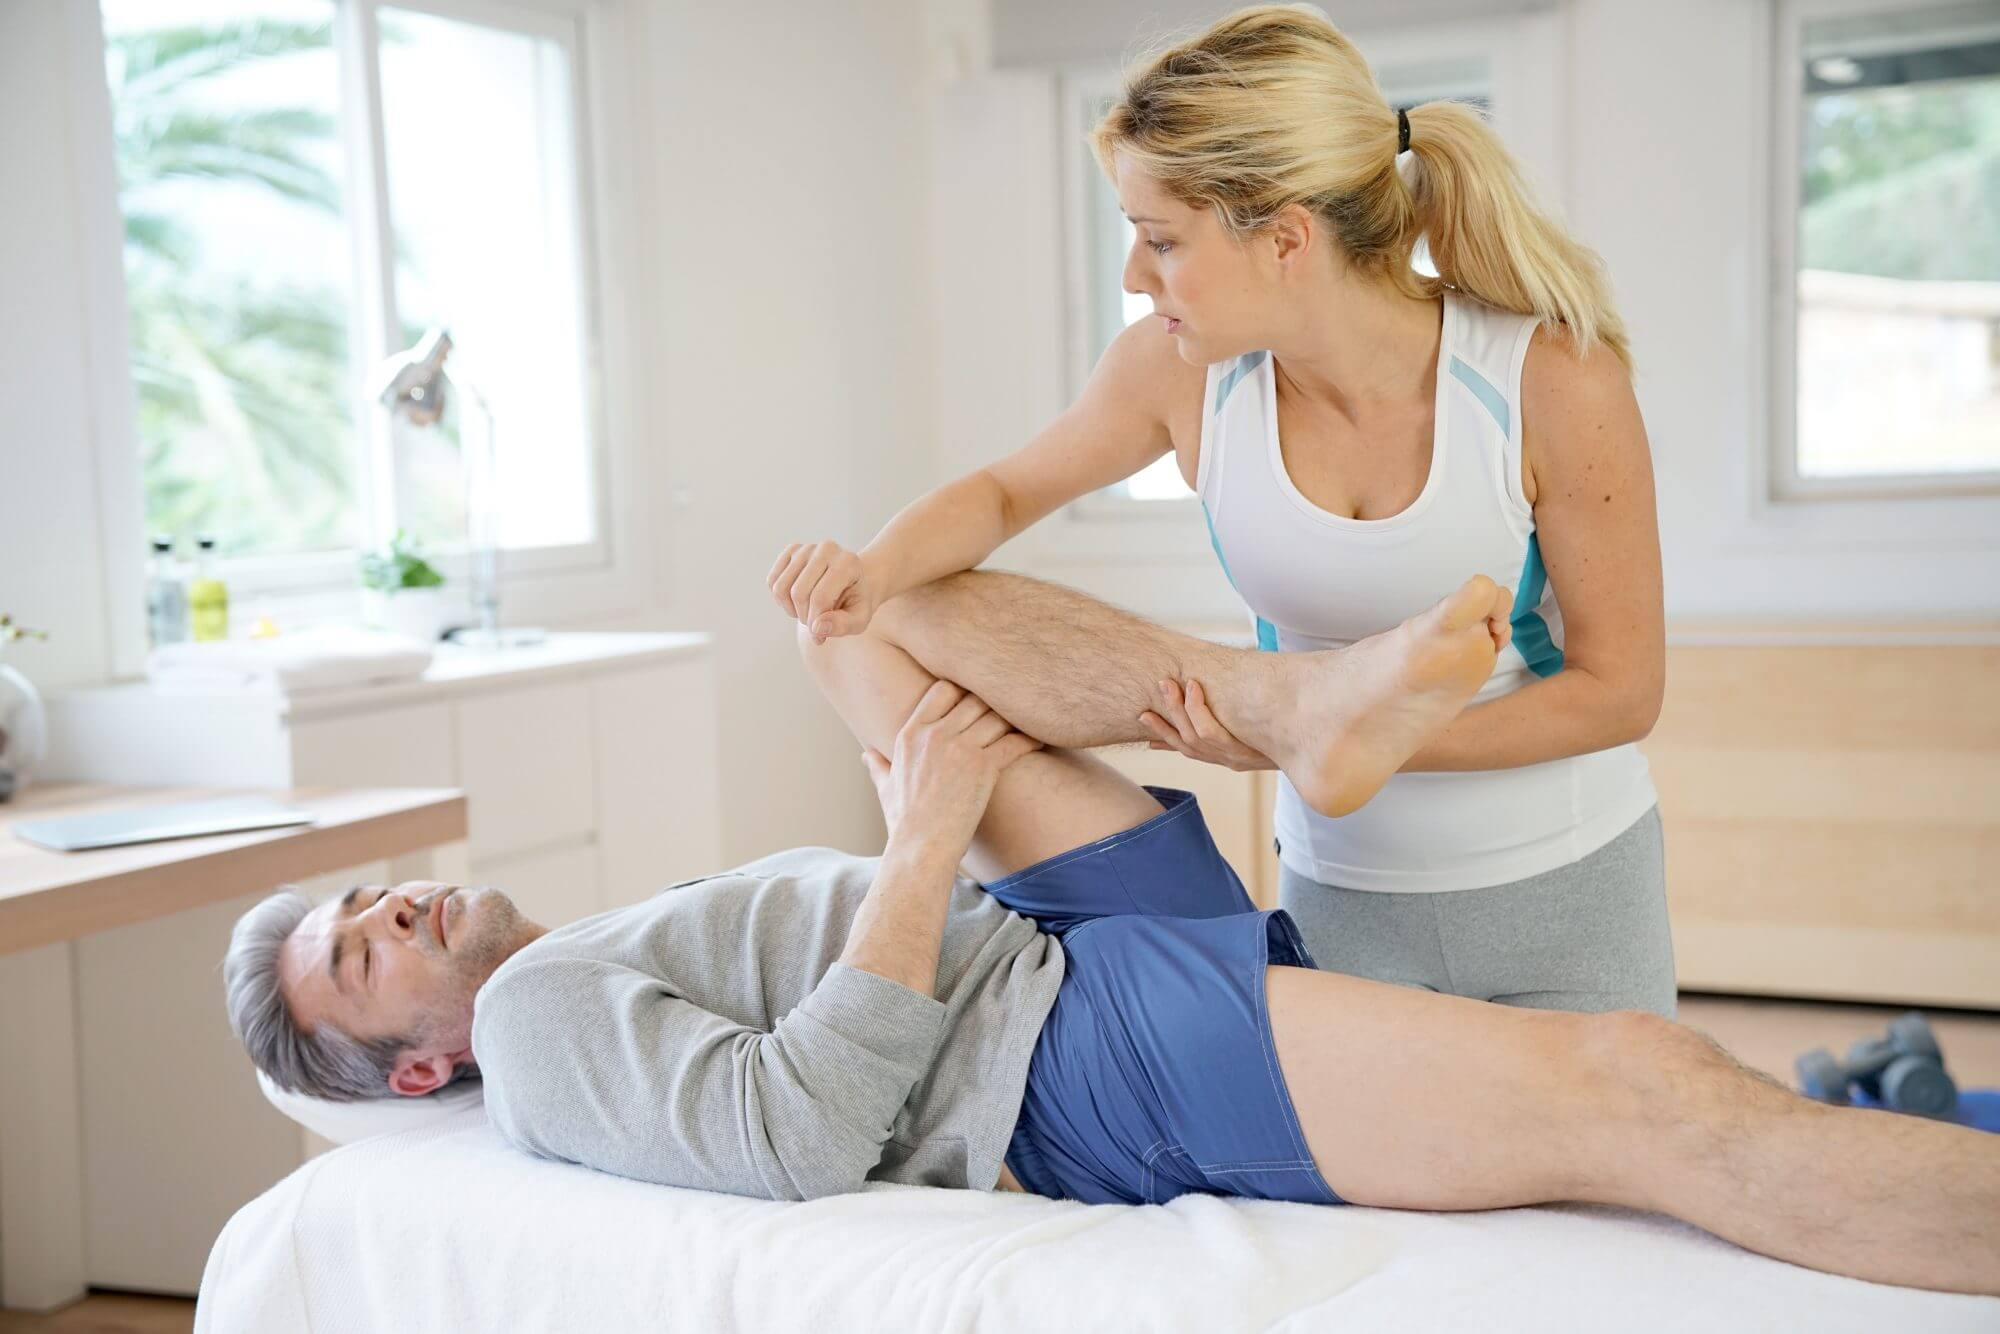 8 Tips On Finding The Best Physiotherapist For You